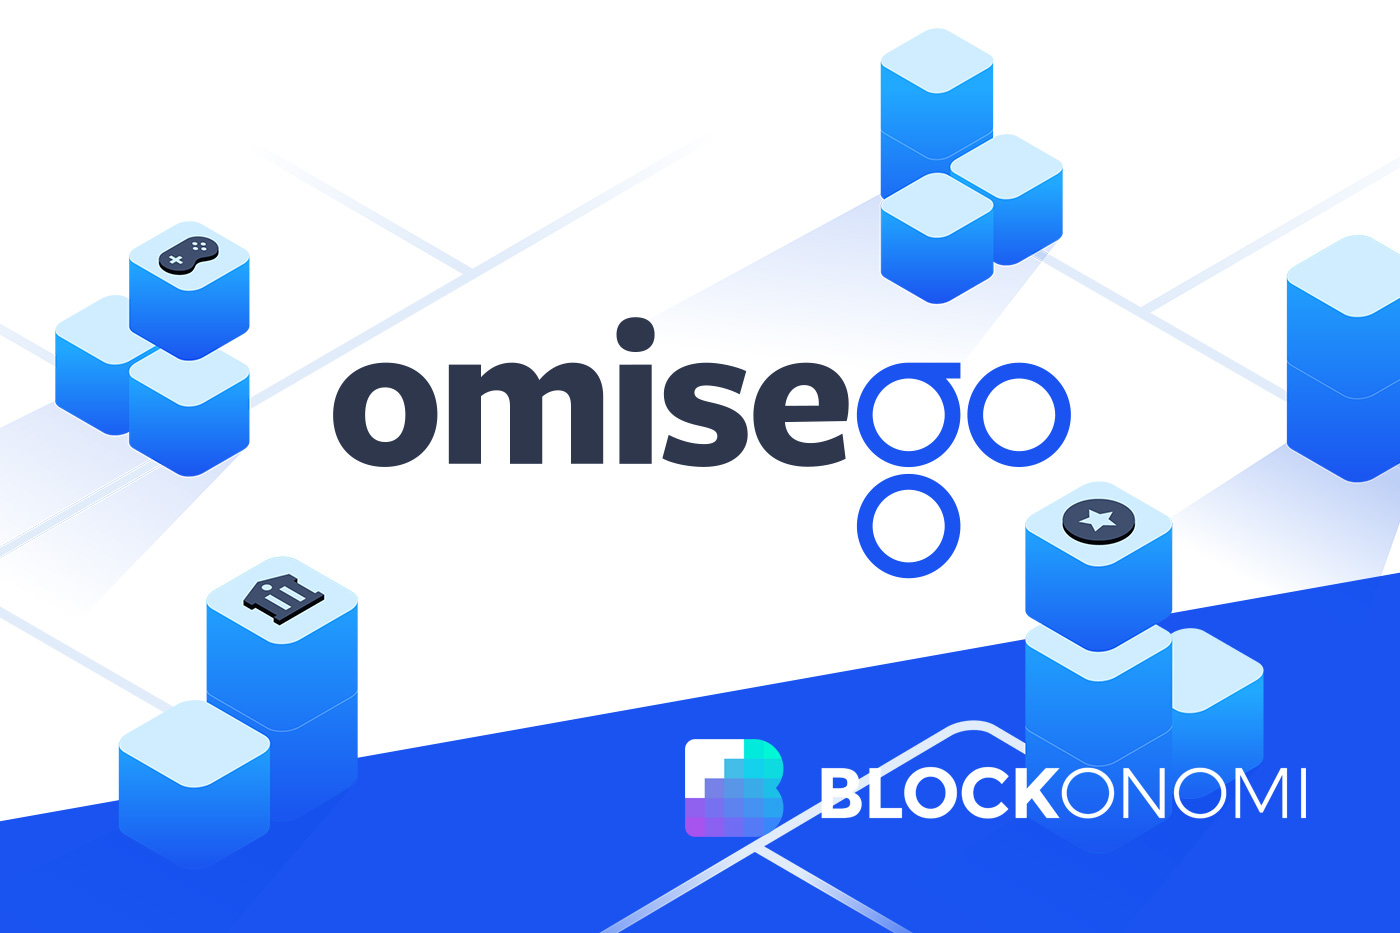 OmiseGo Guide - What is OmiseGo?